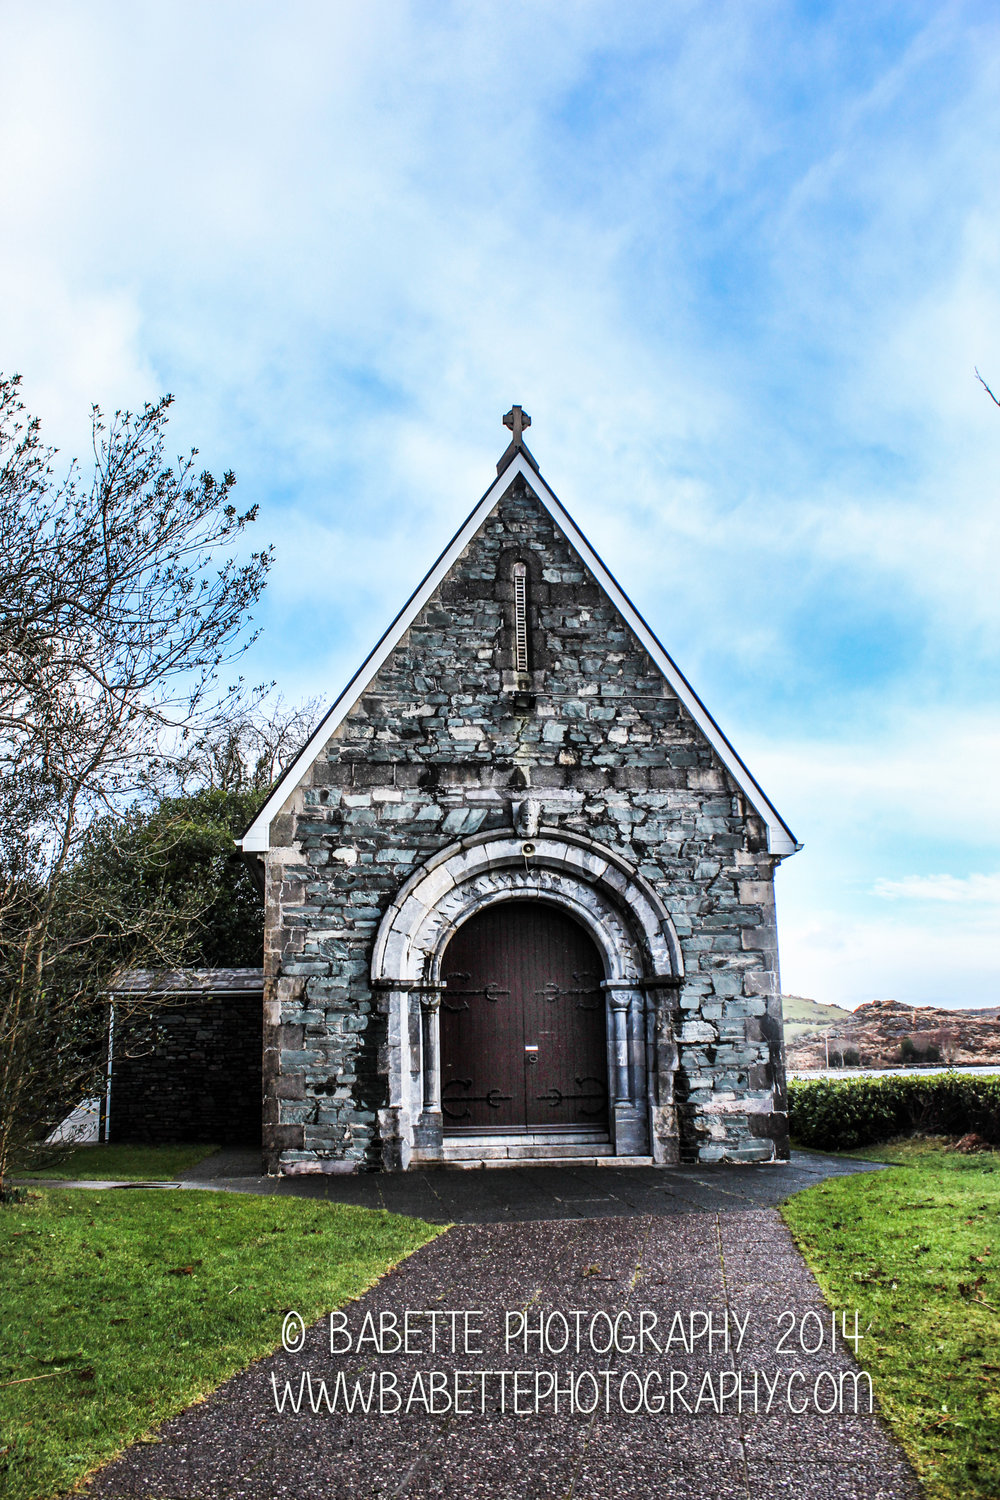 Gougane_Barra_ cork -travels - ireland_babette-photography- church -7799.jpg